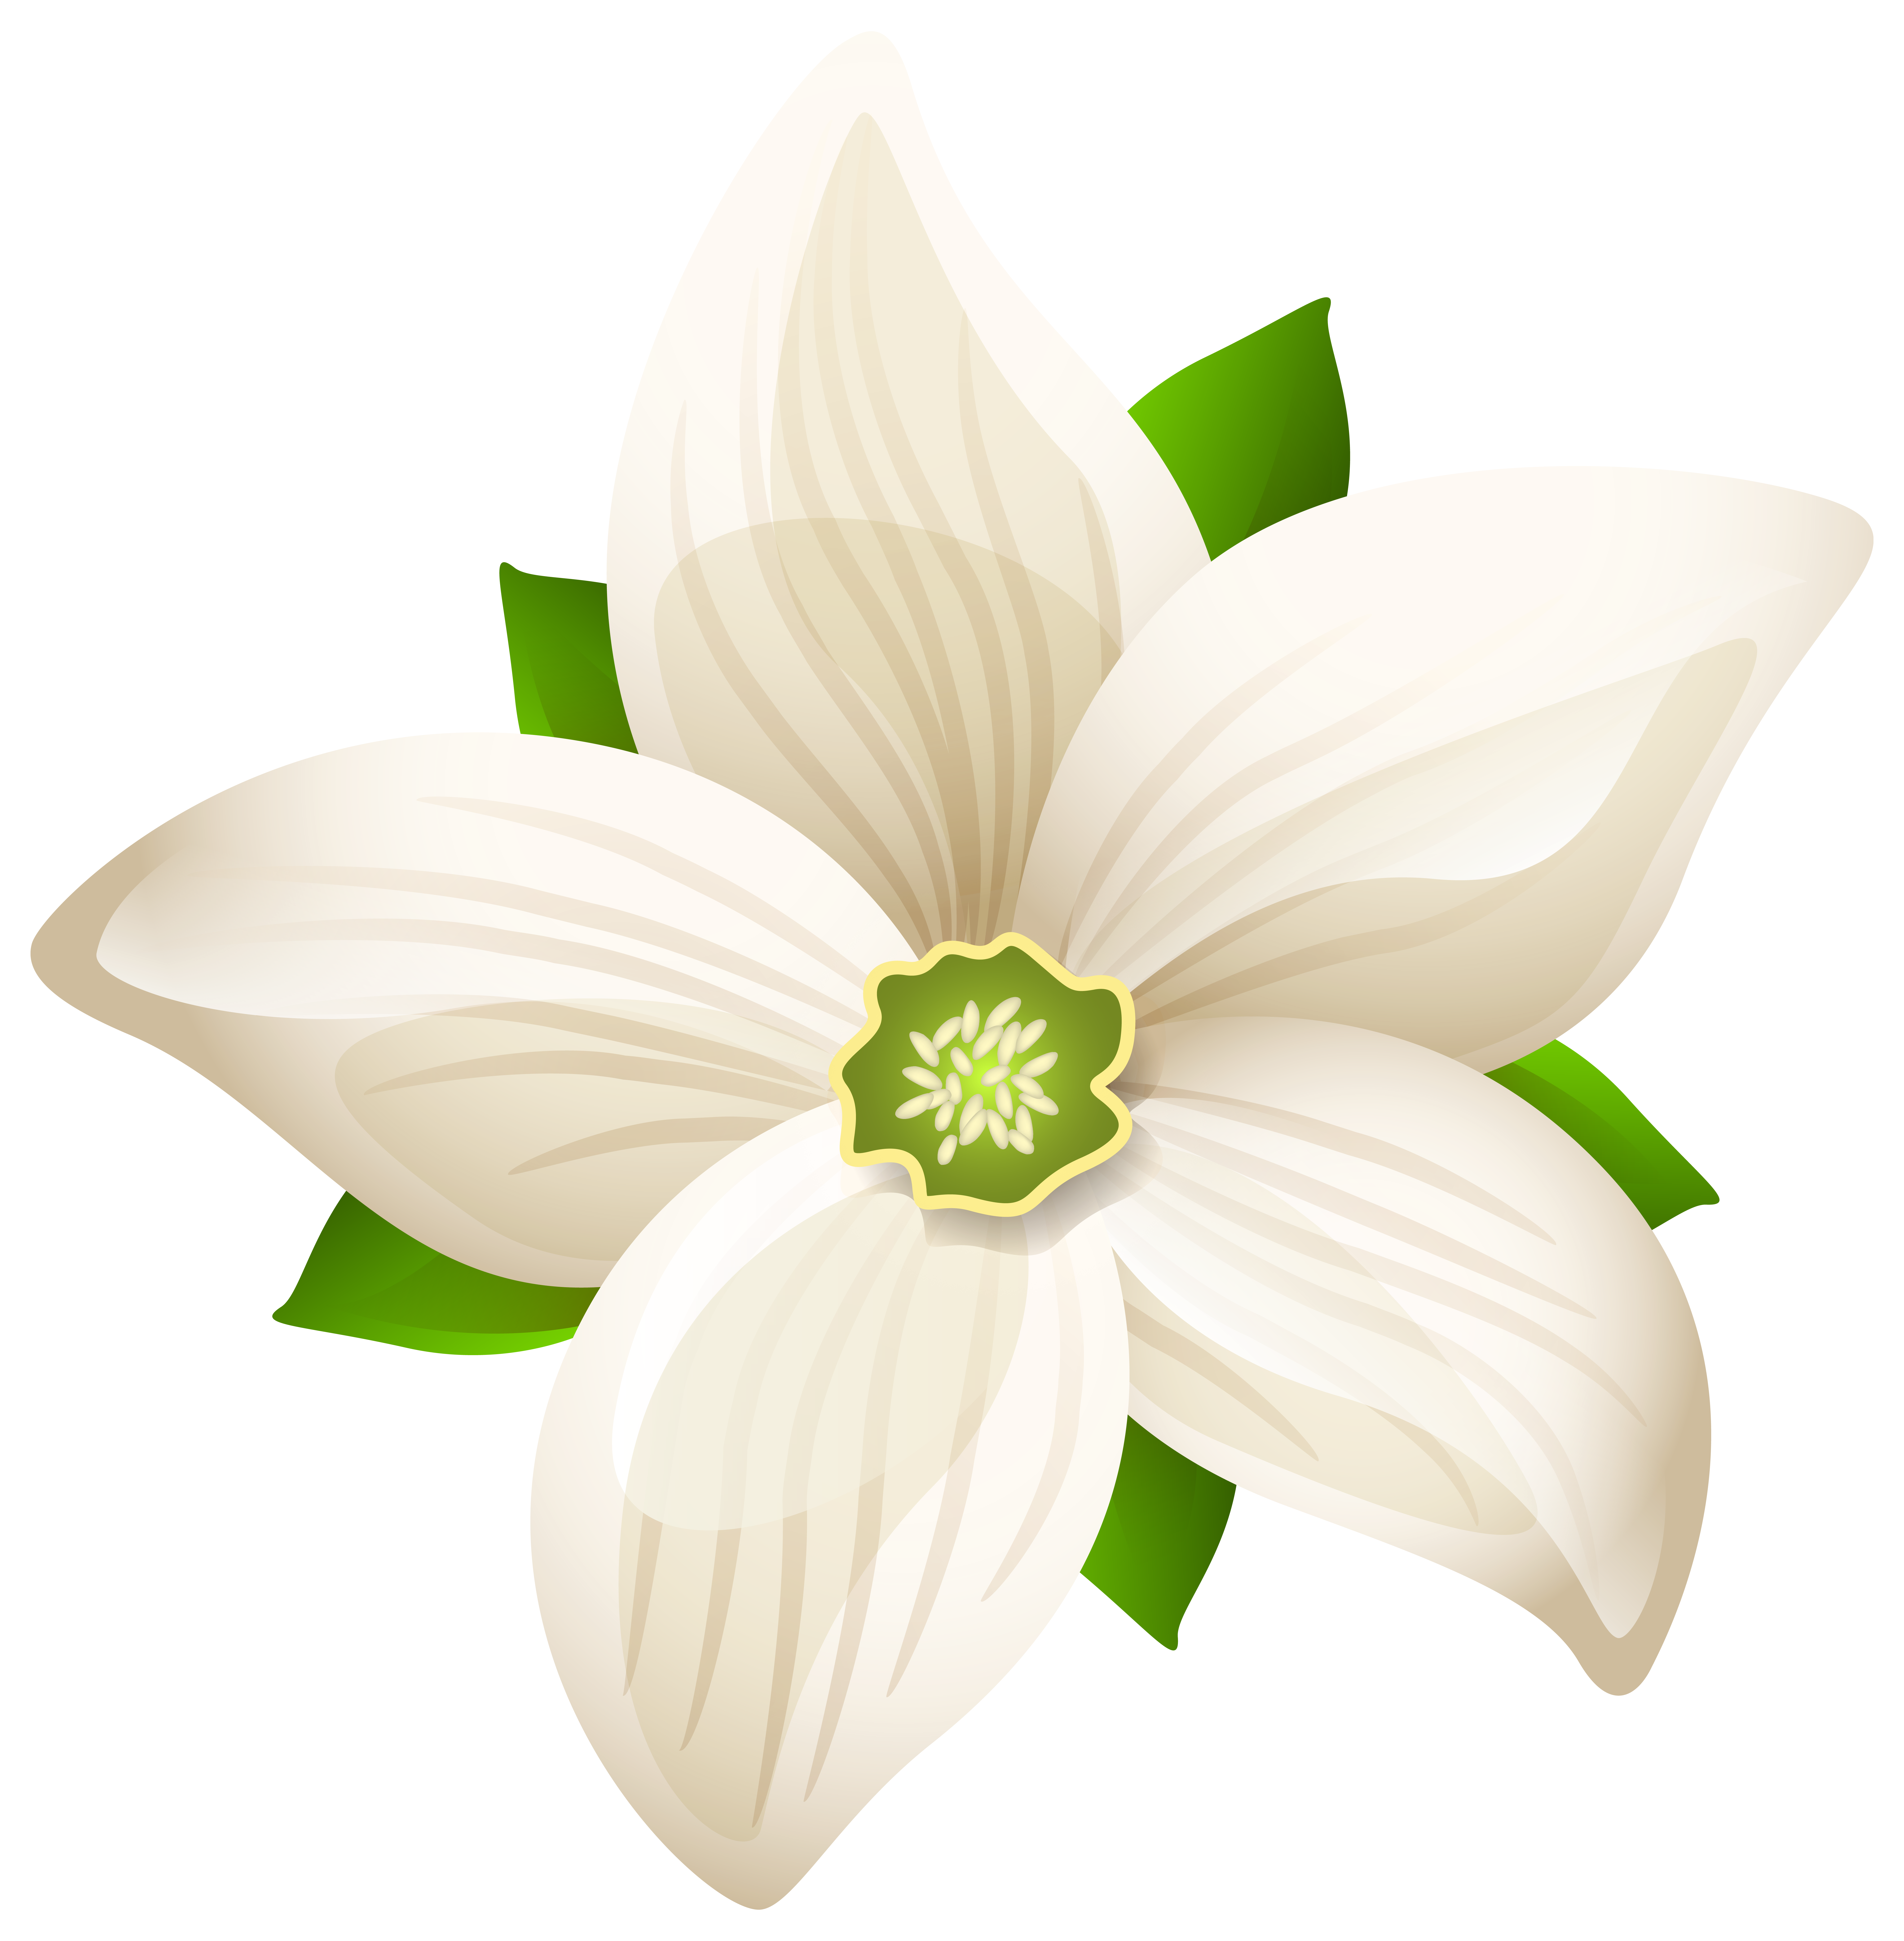 White flower clipart - Clipground